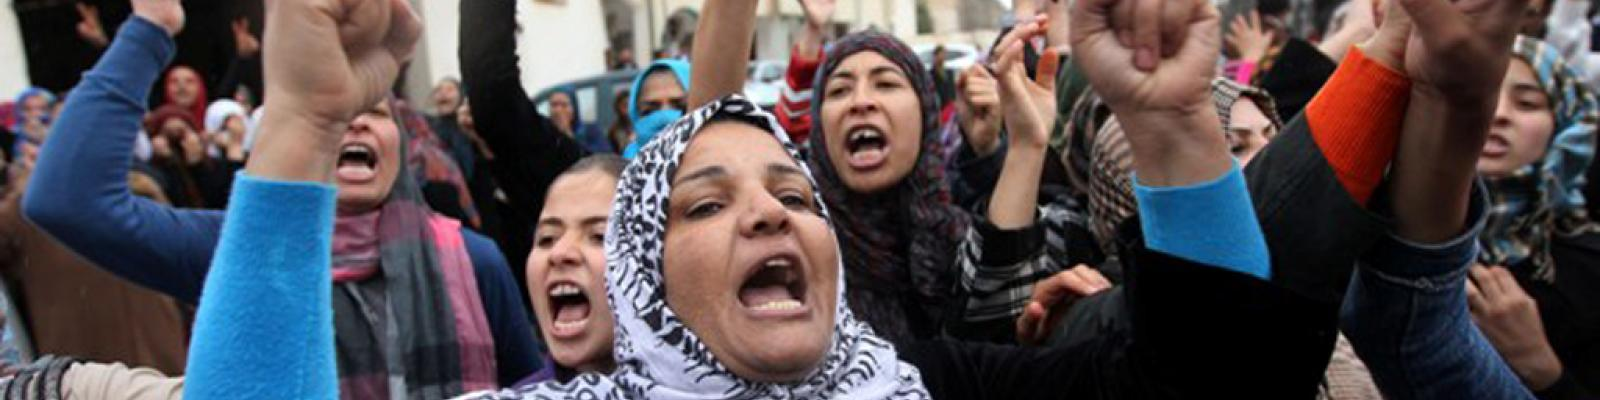 Has the Arab Spring been Beneficial for Women?